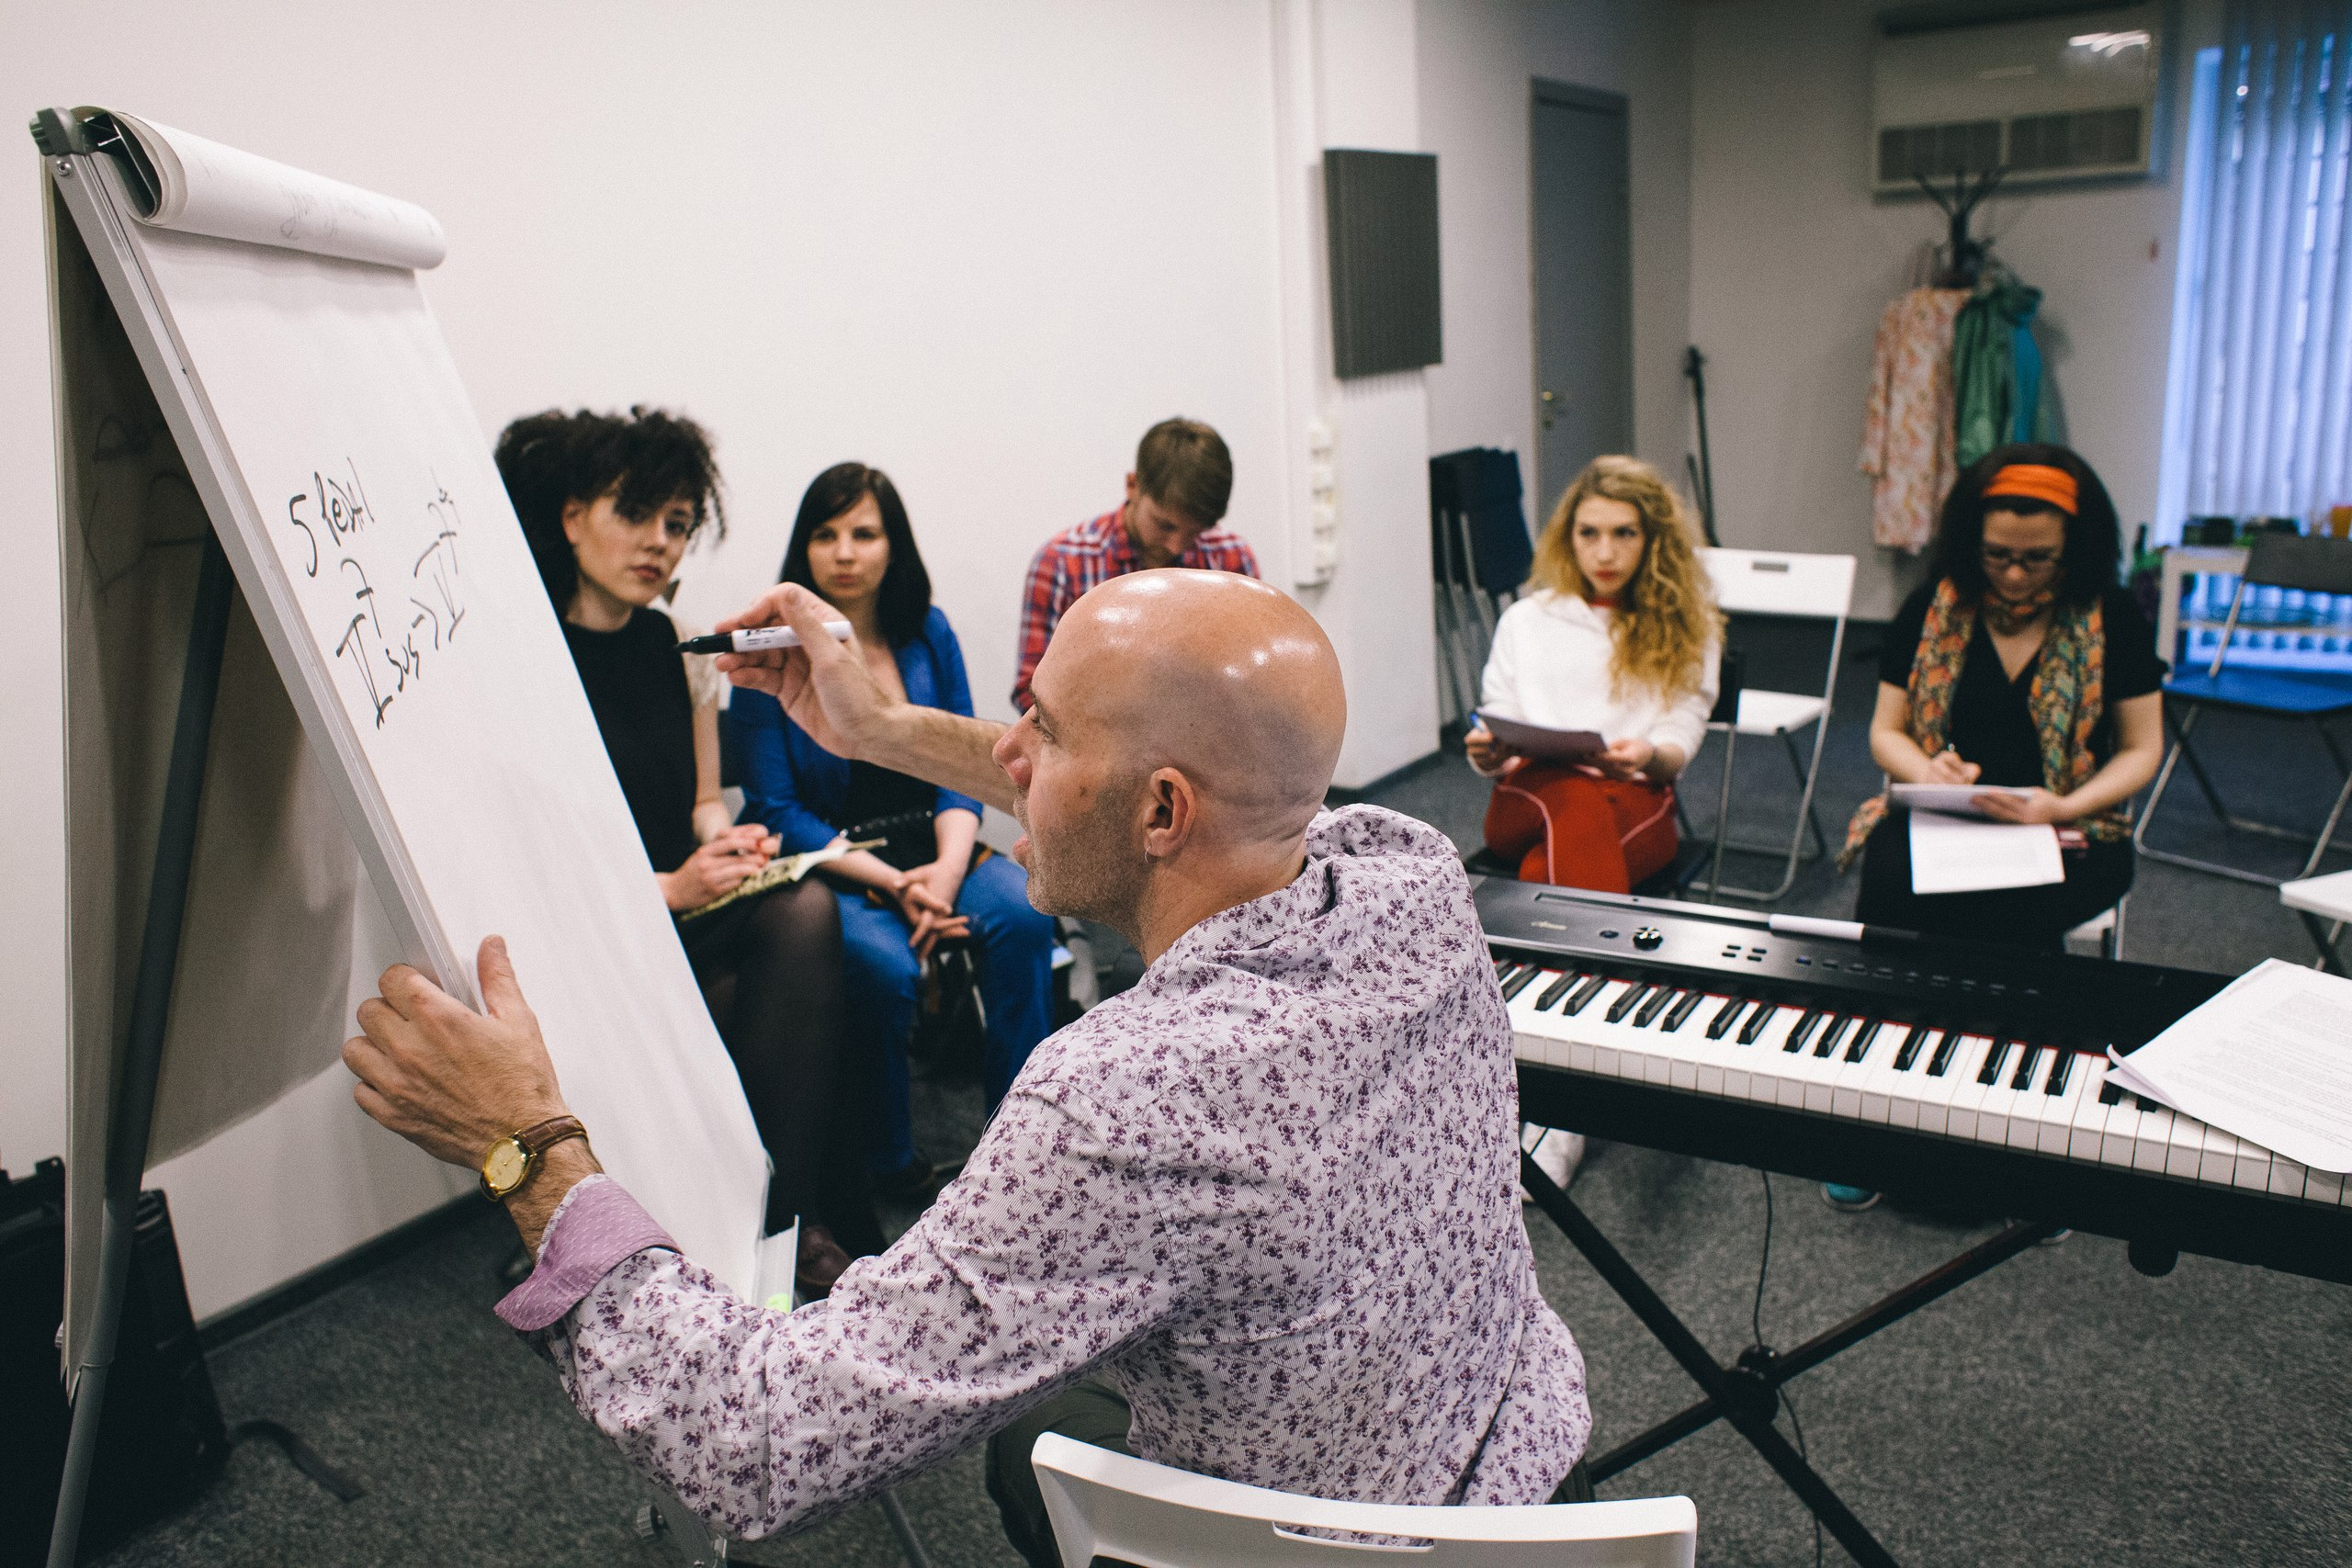 music school Music career information and a complete list of music schools singer, songwriter, music production career information and more.